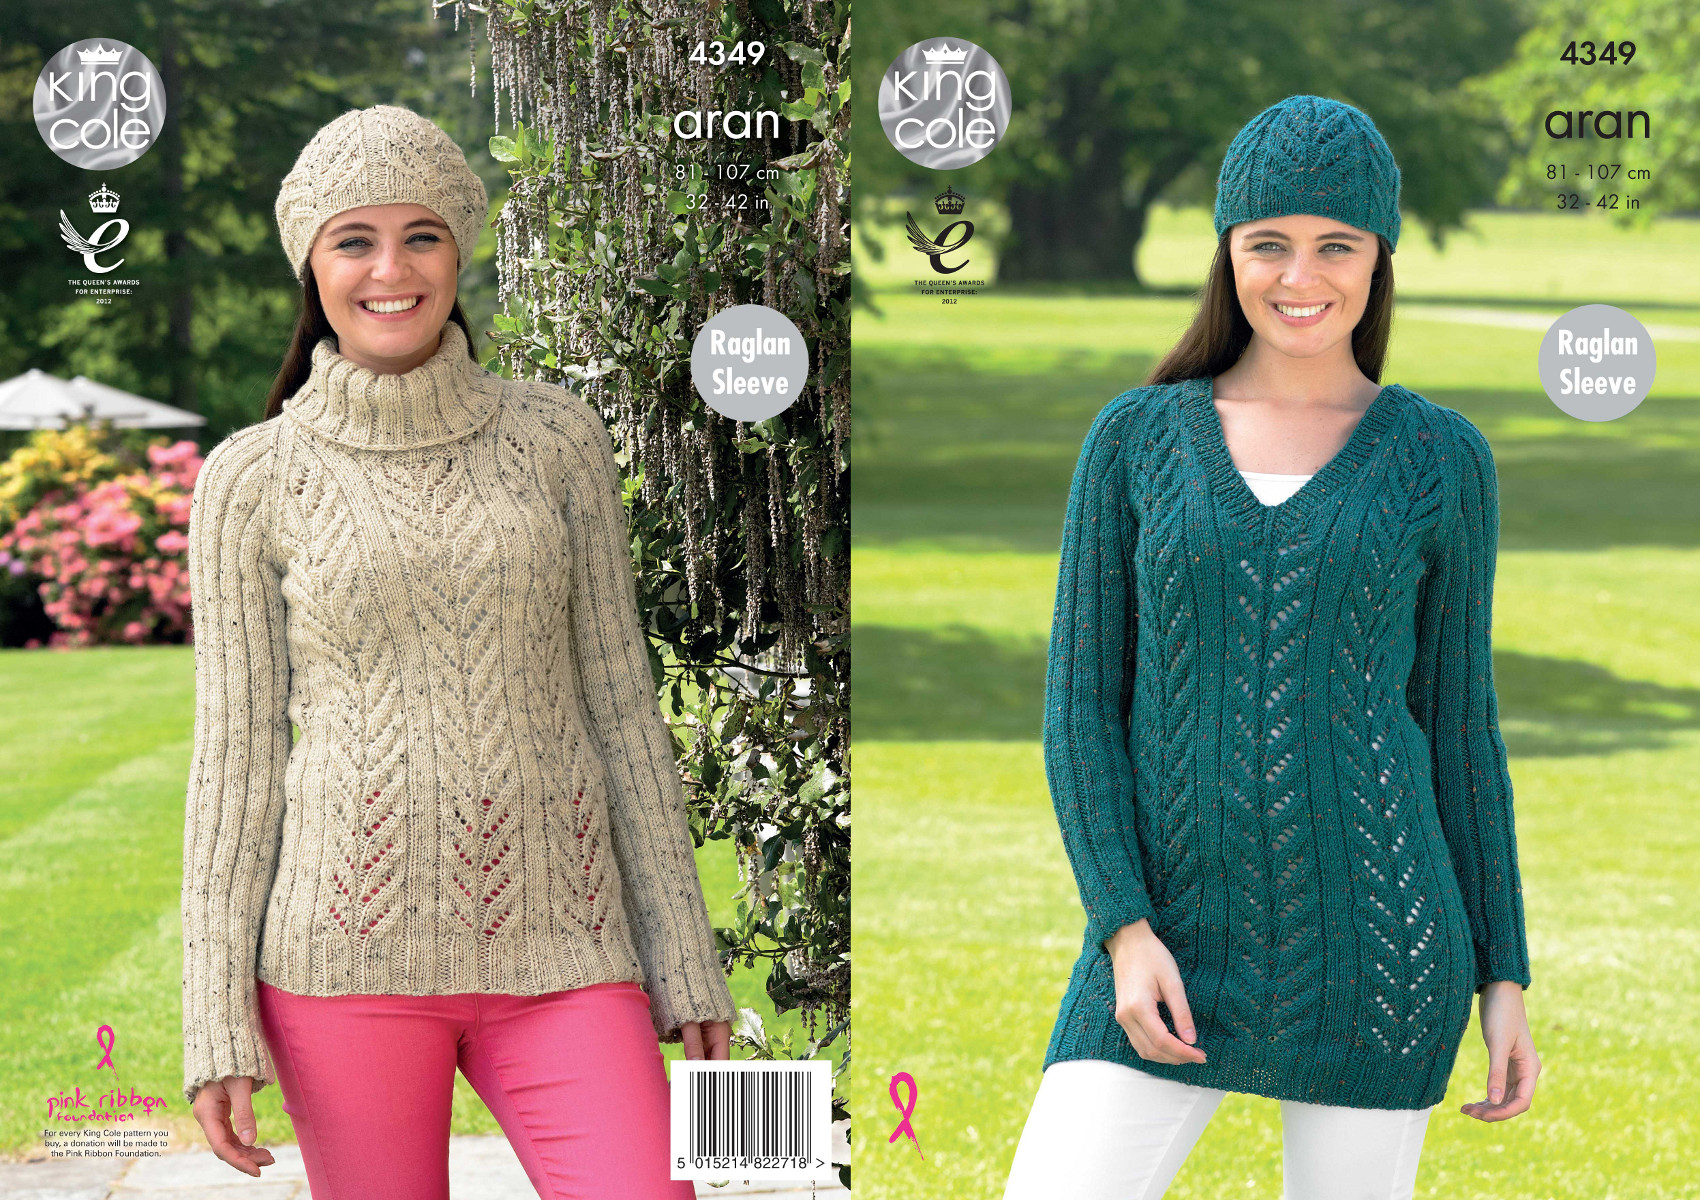 Ladies Knitting Patterns : King Cole Ladies Knitting Pattern Womens Sweater Tunic & Hats Fashion Ara...